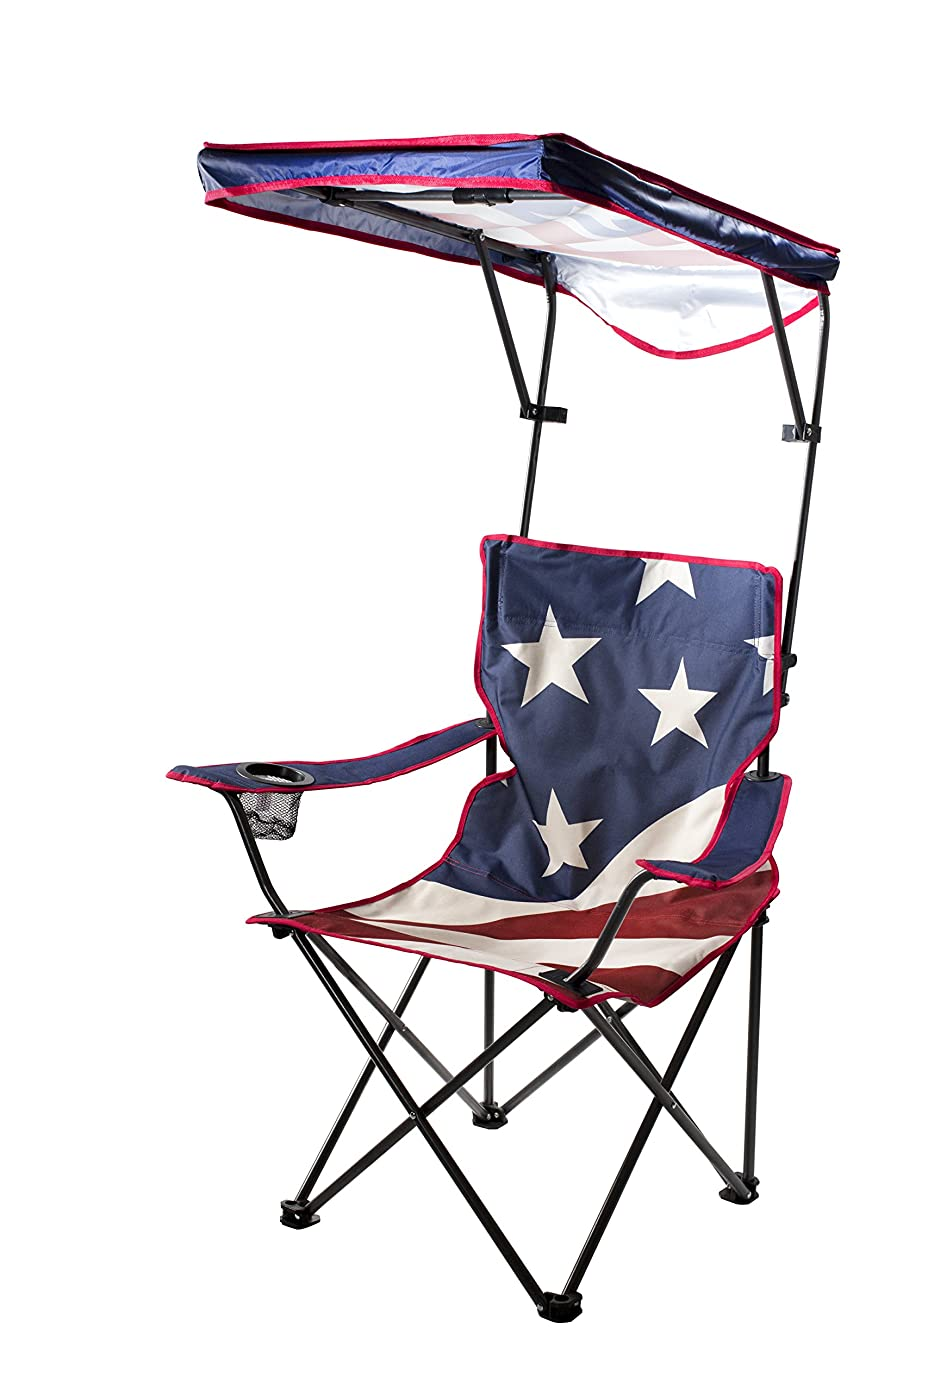 Quik Shade Adjustable Canopy Folding Shade Chair, American Flag ue19792514